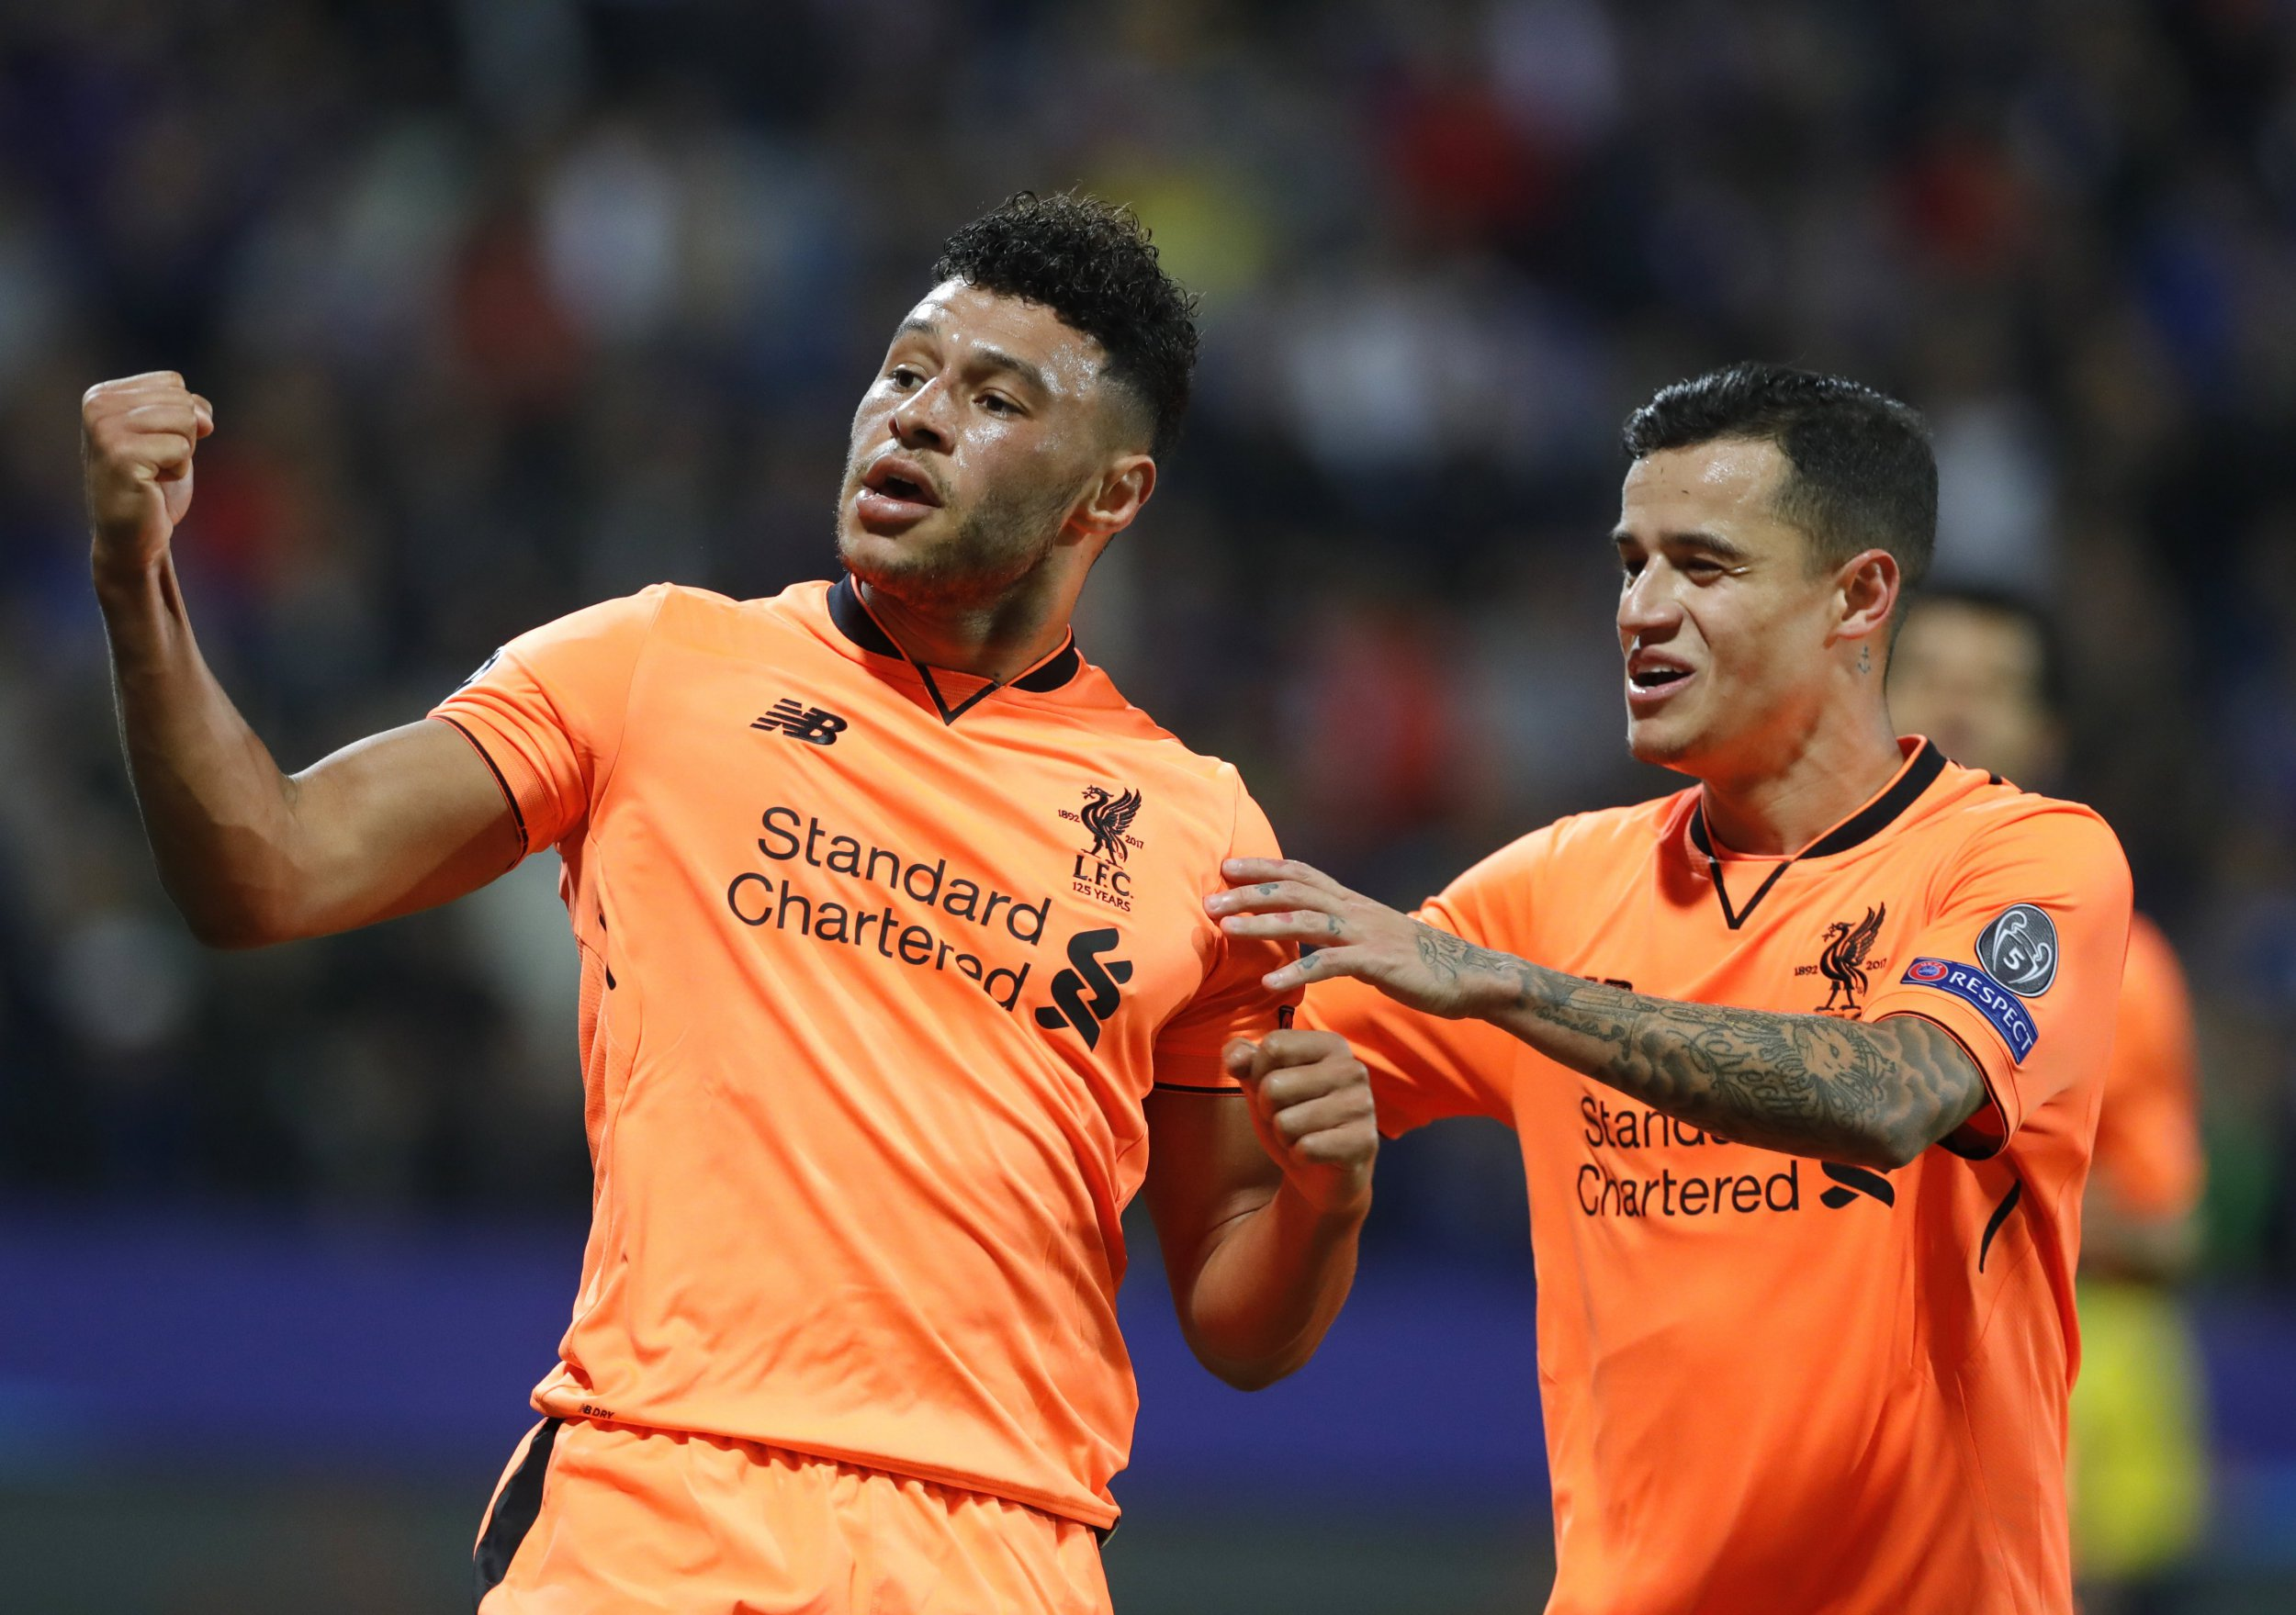 Philippe Coutinho's move to Barcelona won't affect Liverpool's attacking football, says Alex Oxlade-Chamberlain